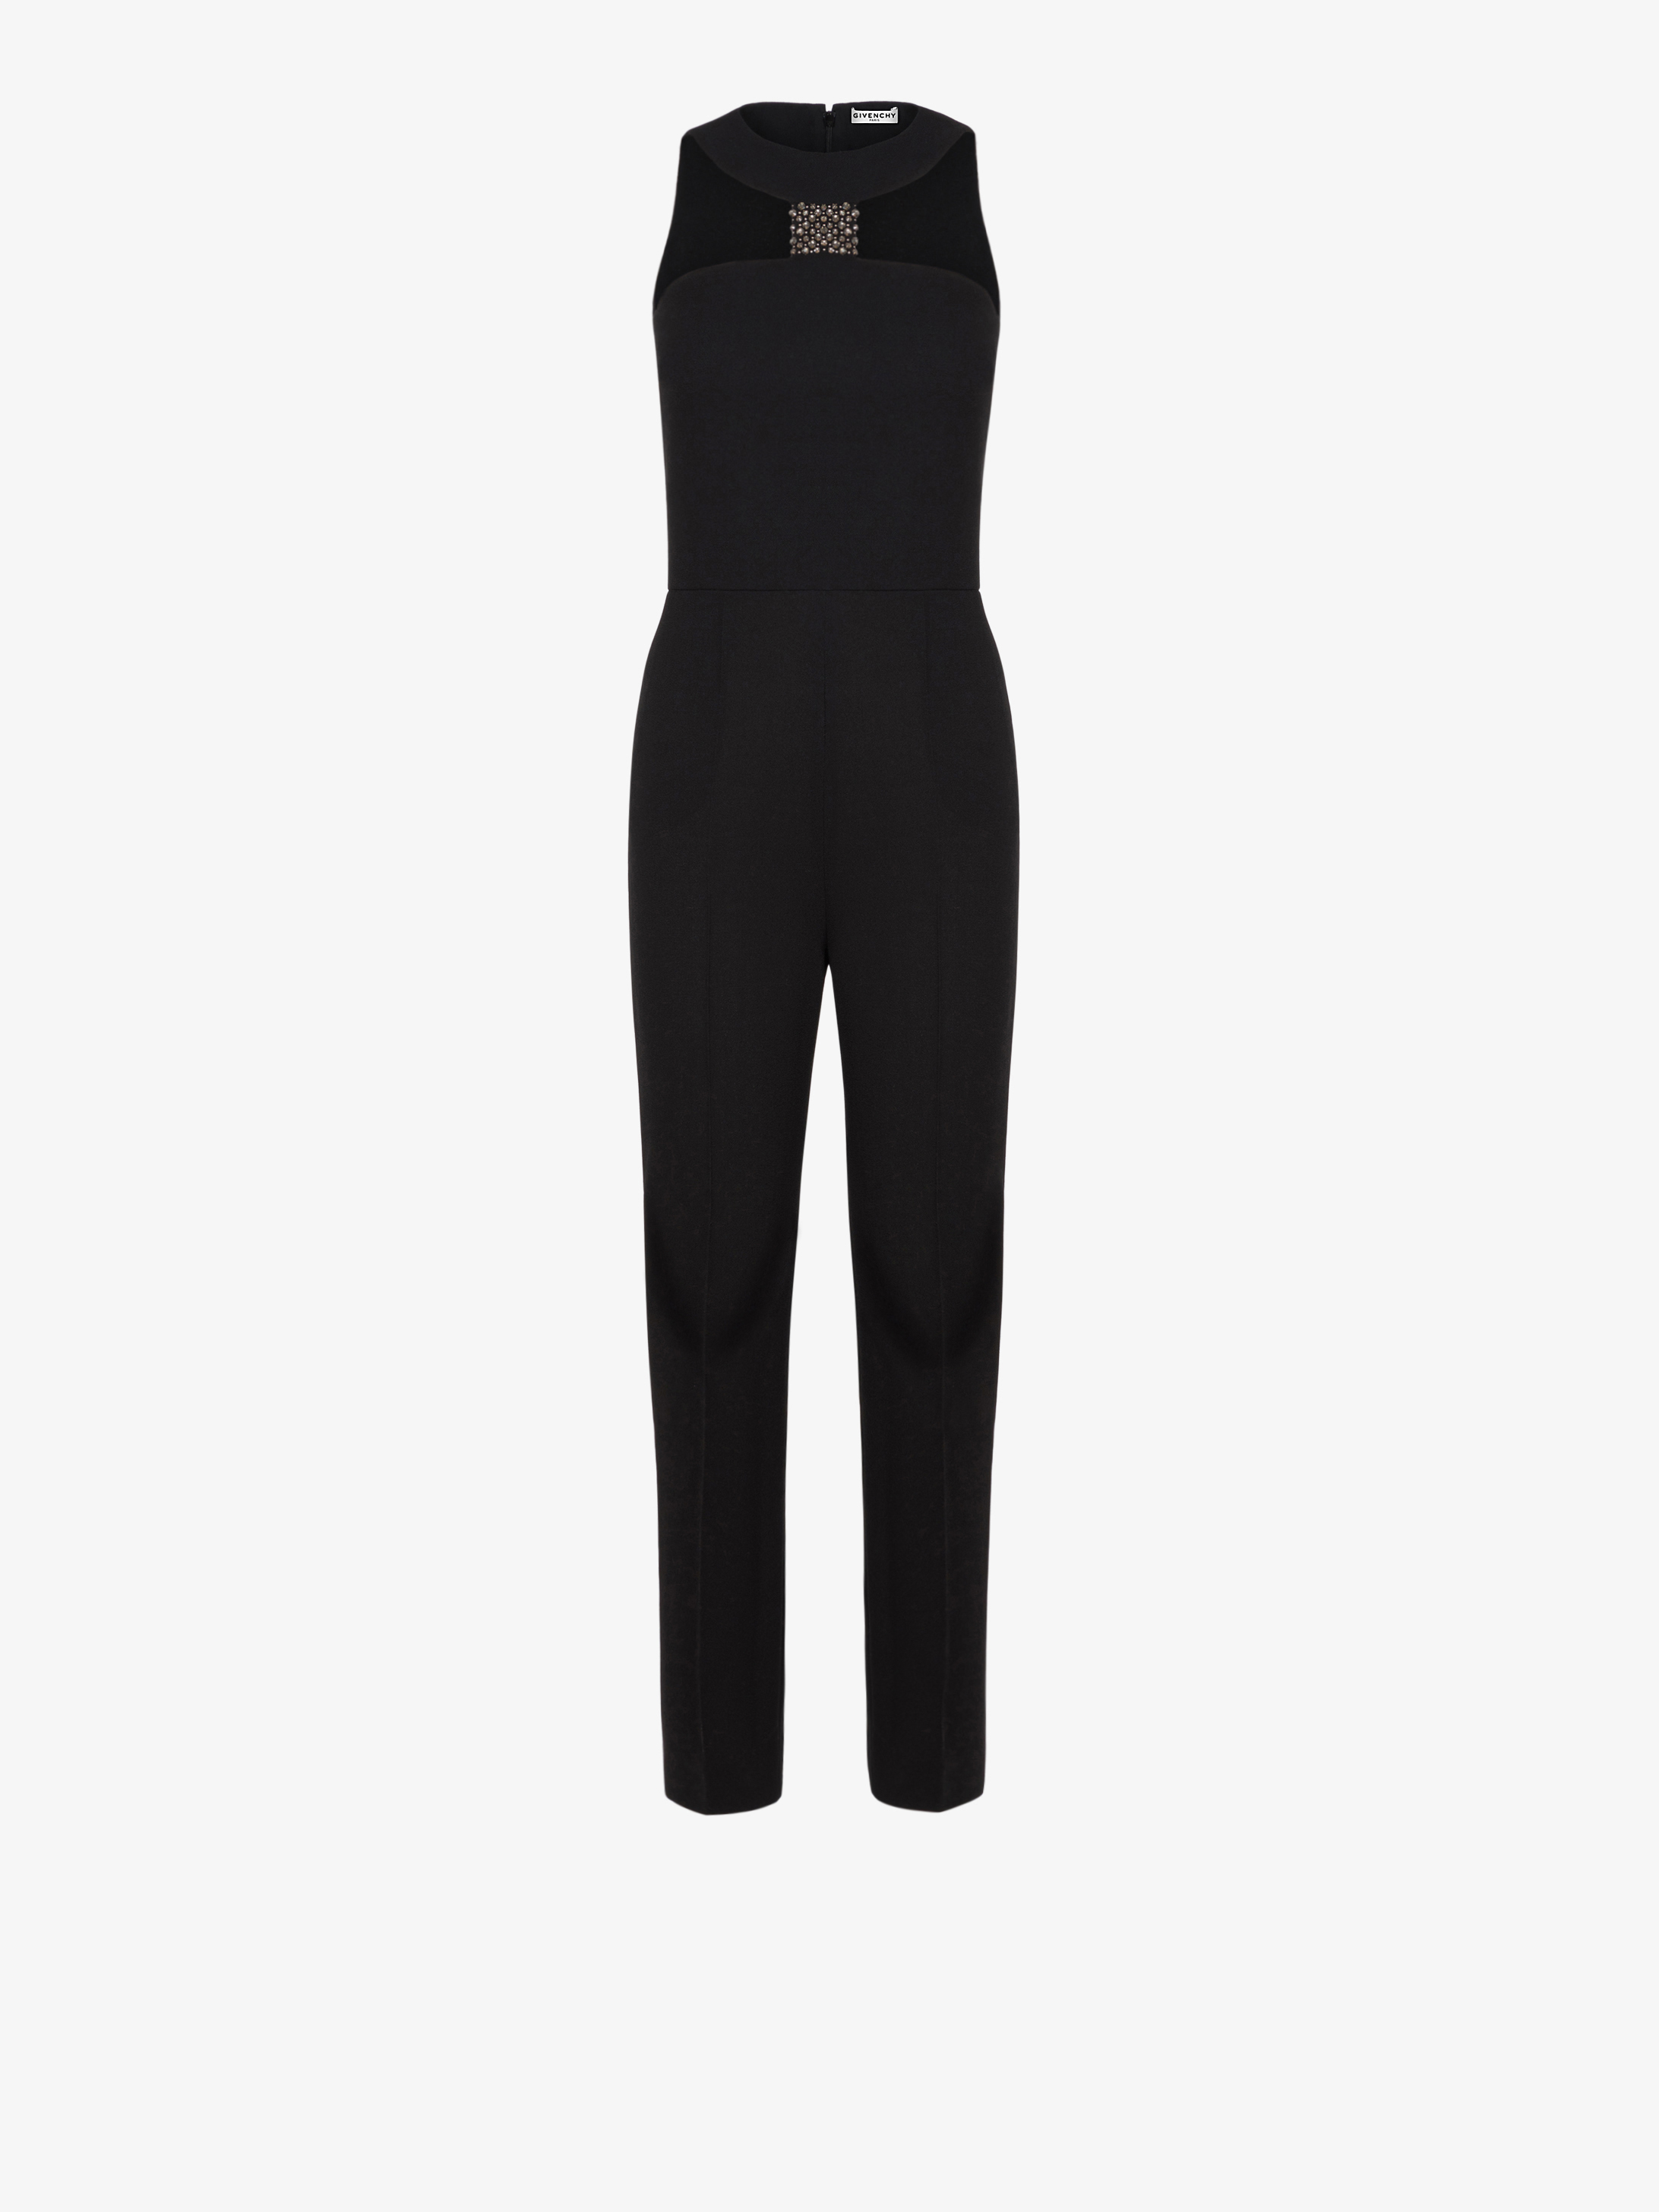 Jumpsuit in crêpe de laine with graphic neckline